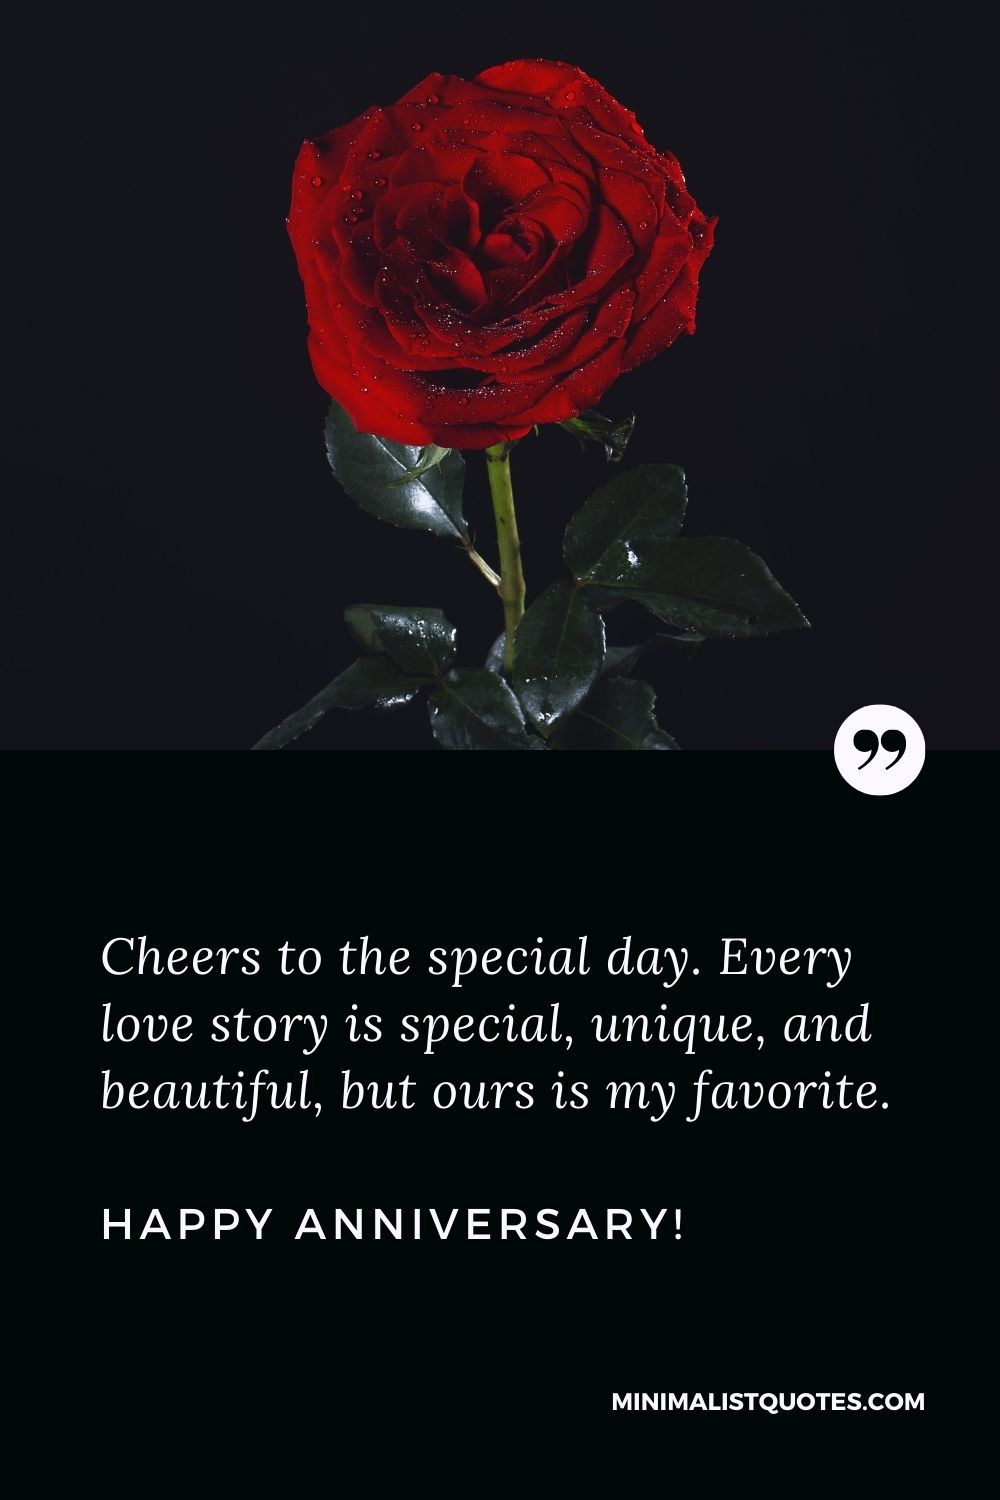 Anniversary quotes for husband: Cheers to the special day. Every love story is special, unique, and beautiful, but ours is my favorite. Happy Anniversary!